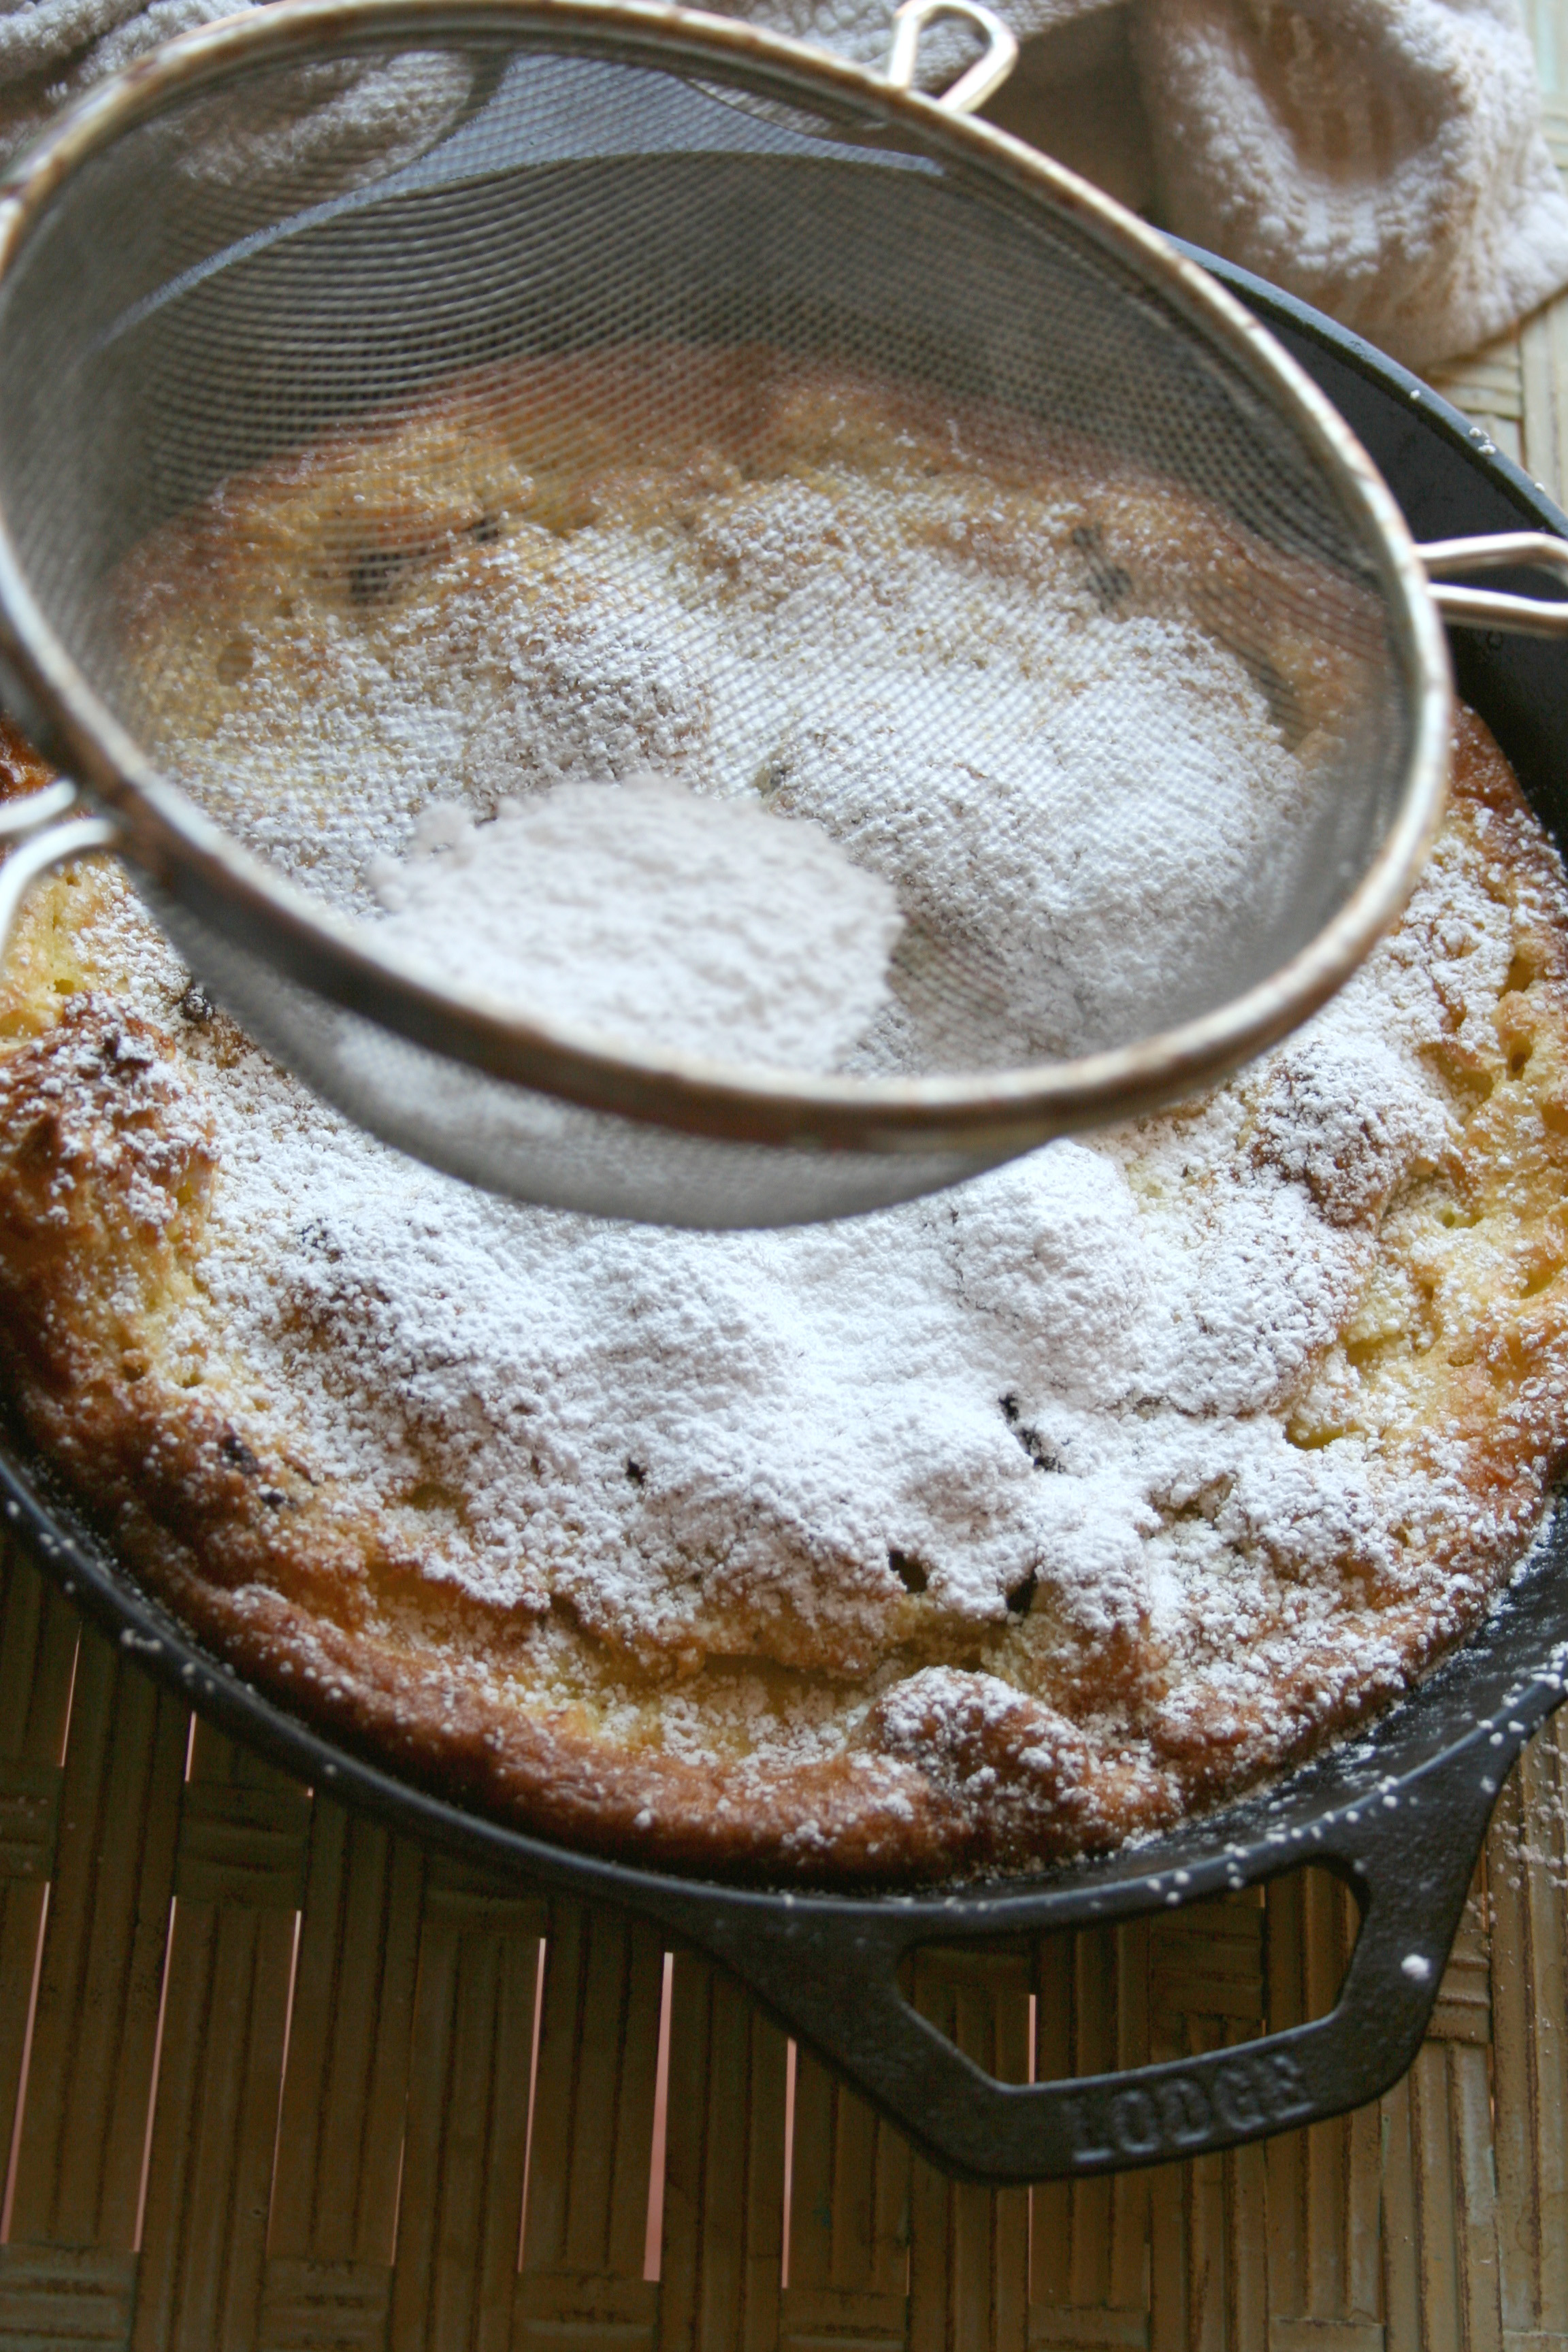 Finish off with confectioners' sugar